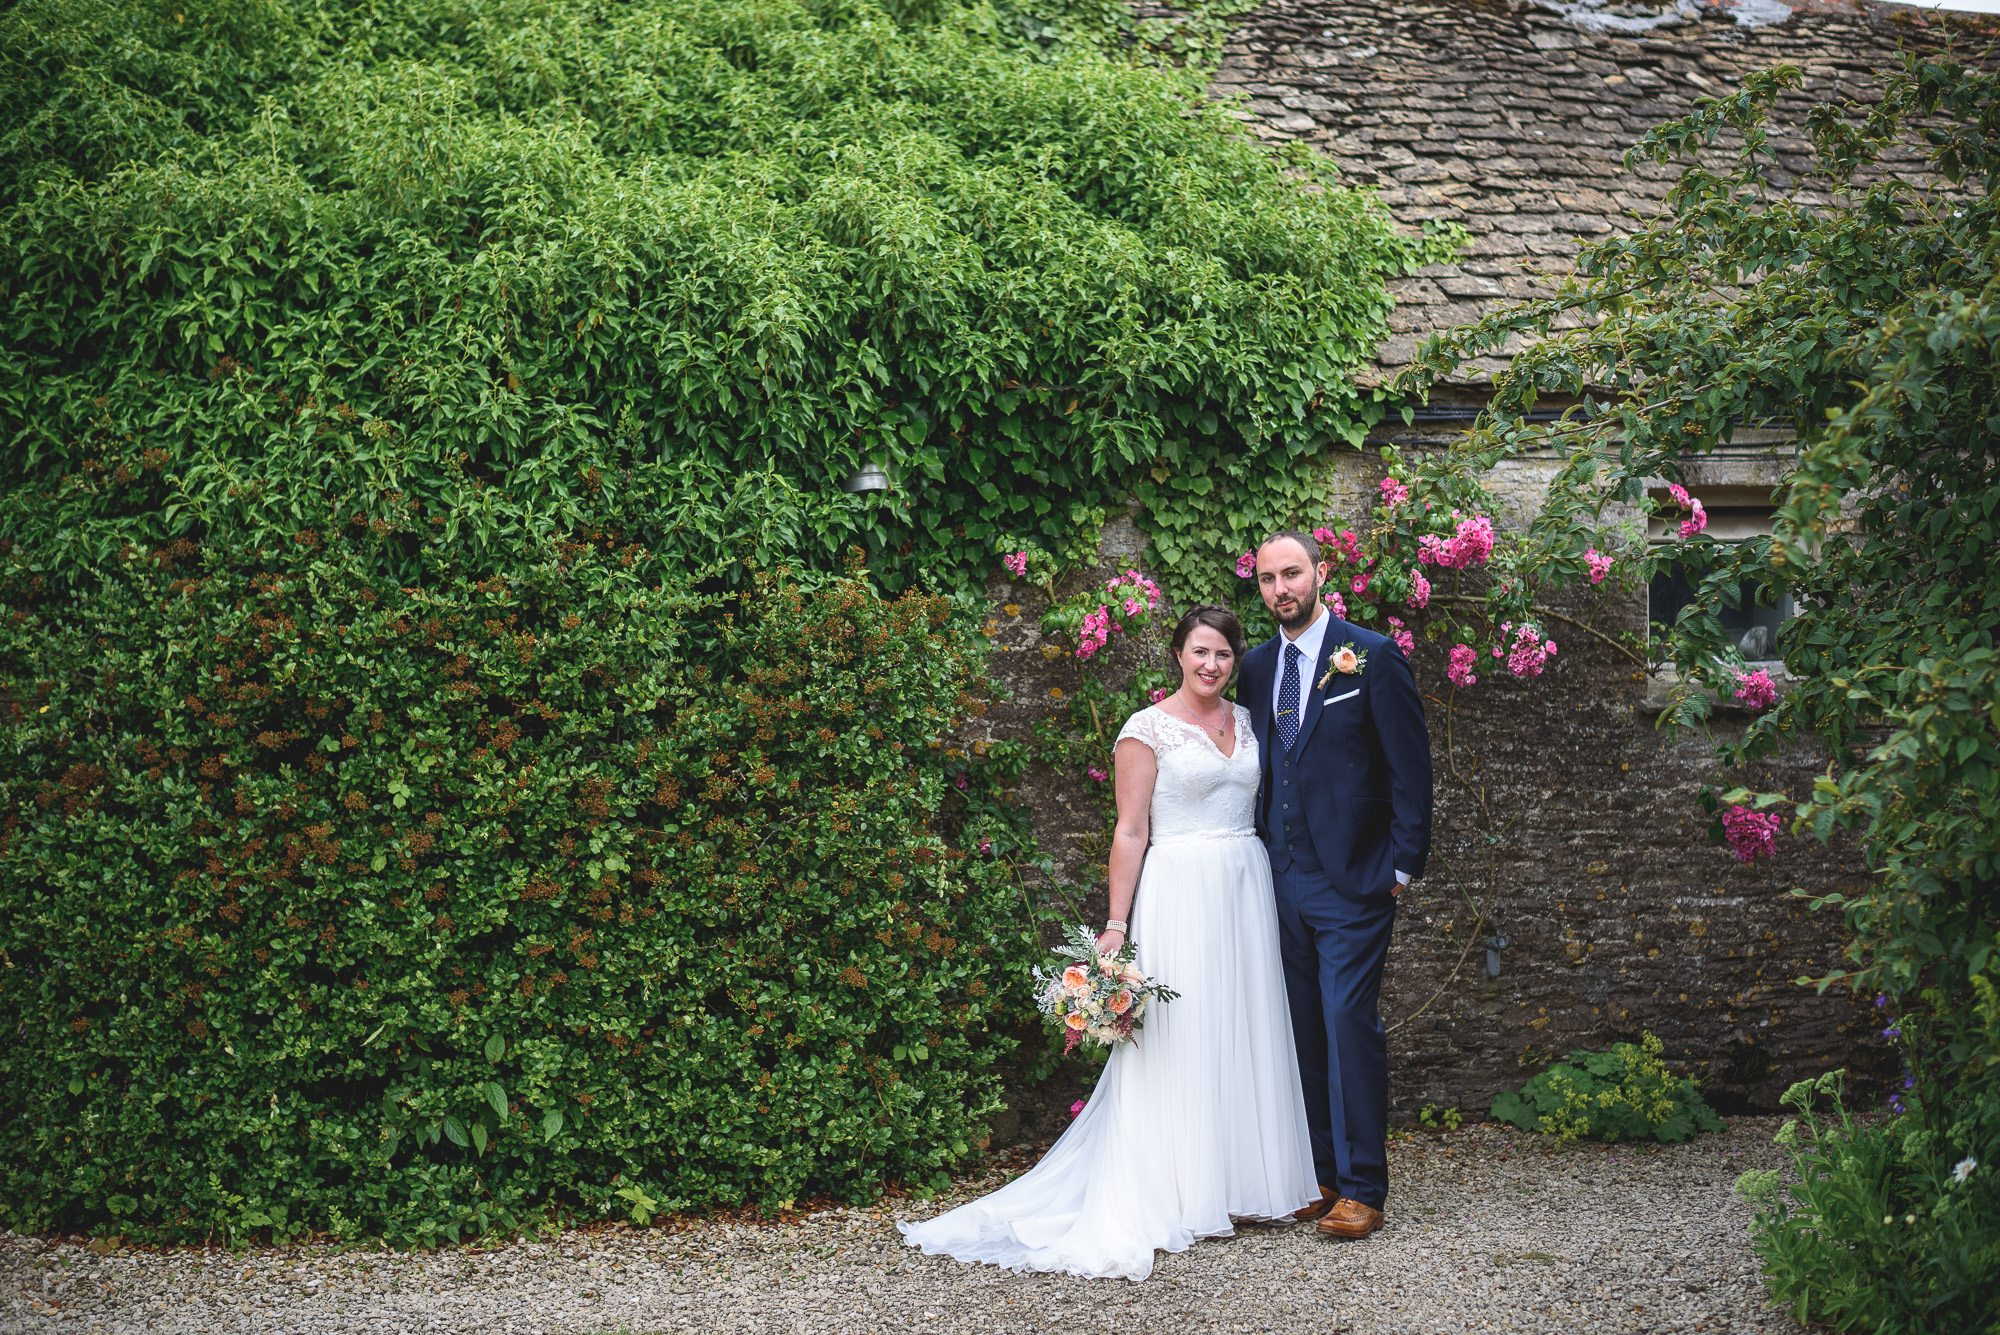 Jem and Andy - - The Rectory at Crudwell wedding photography (158 of 195)